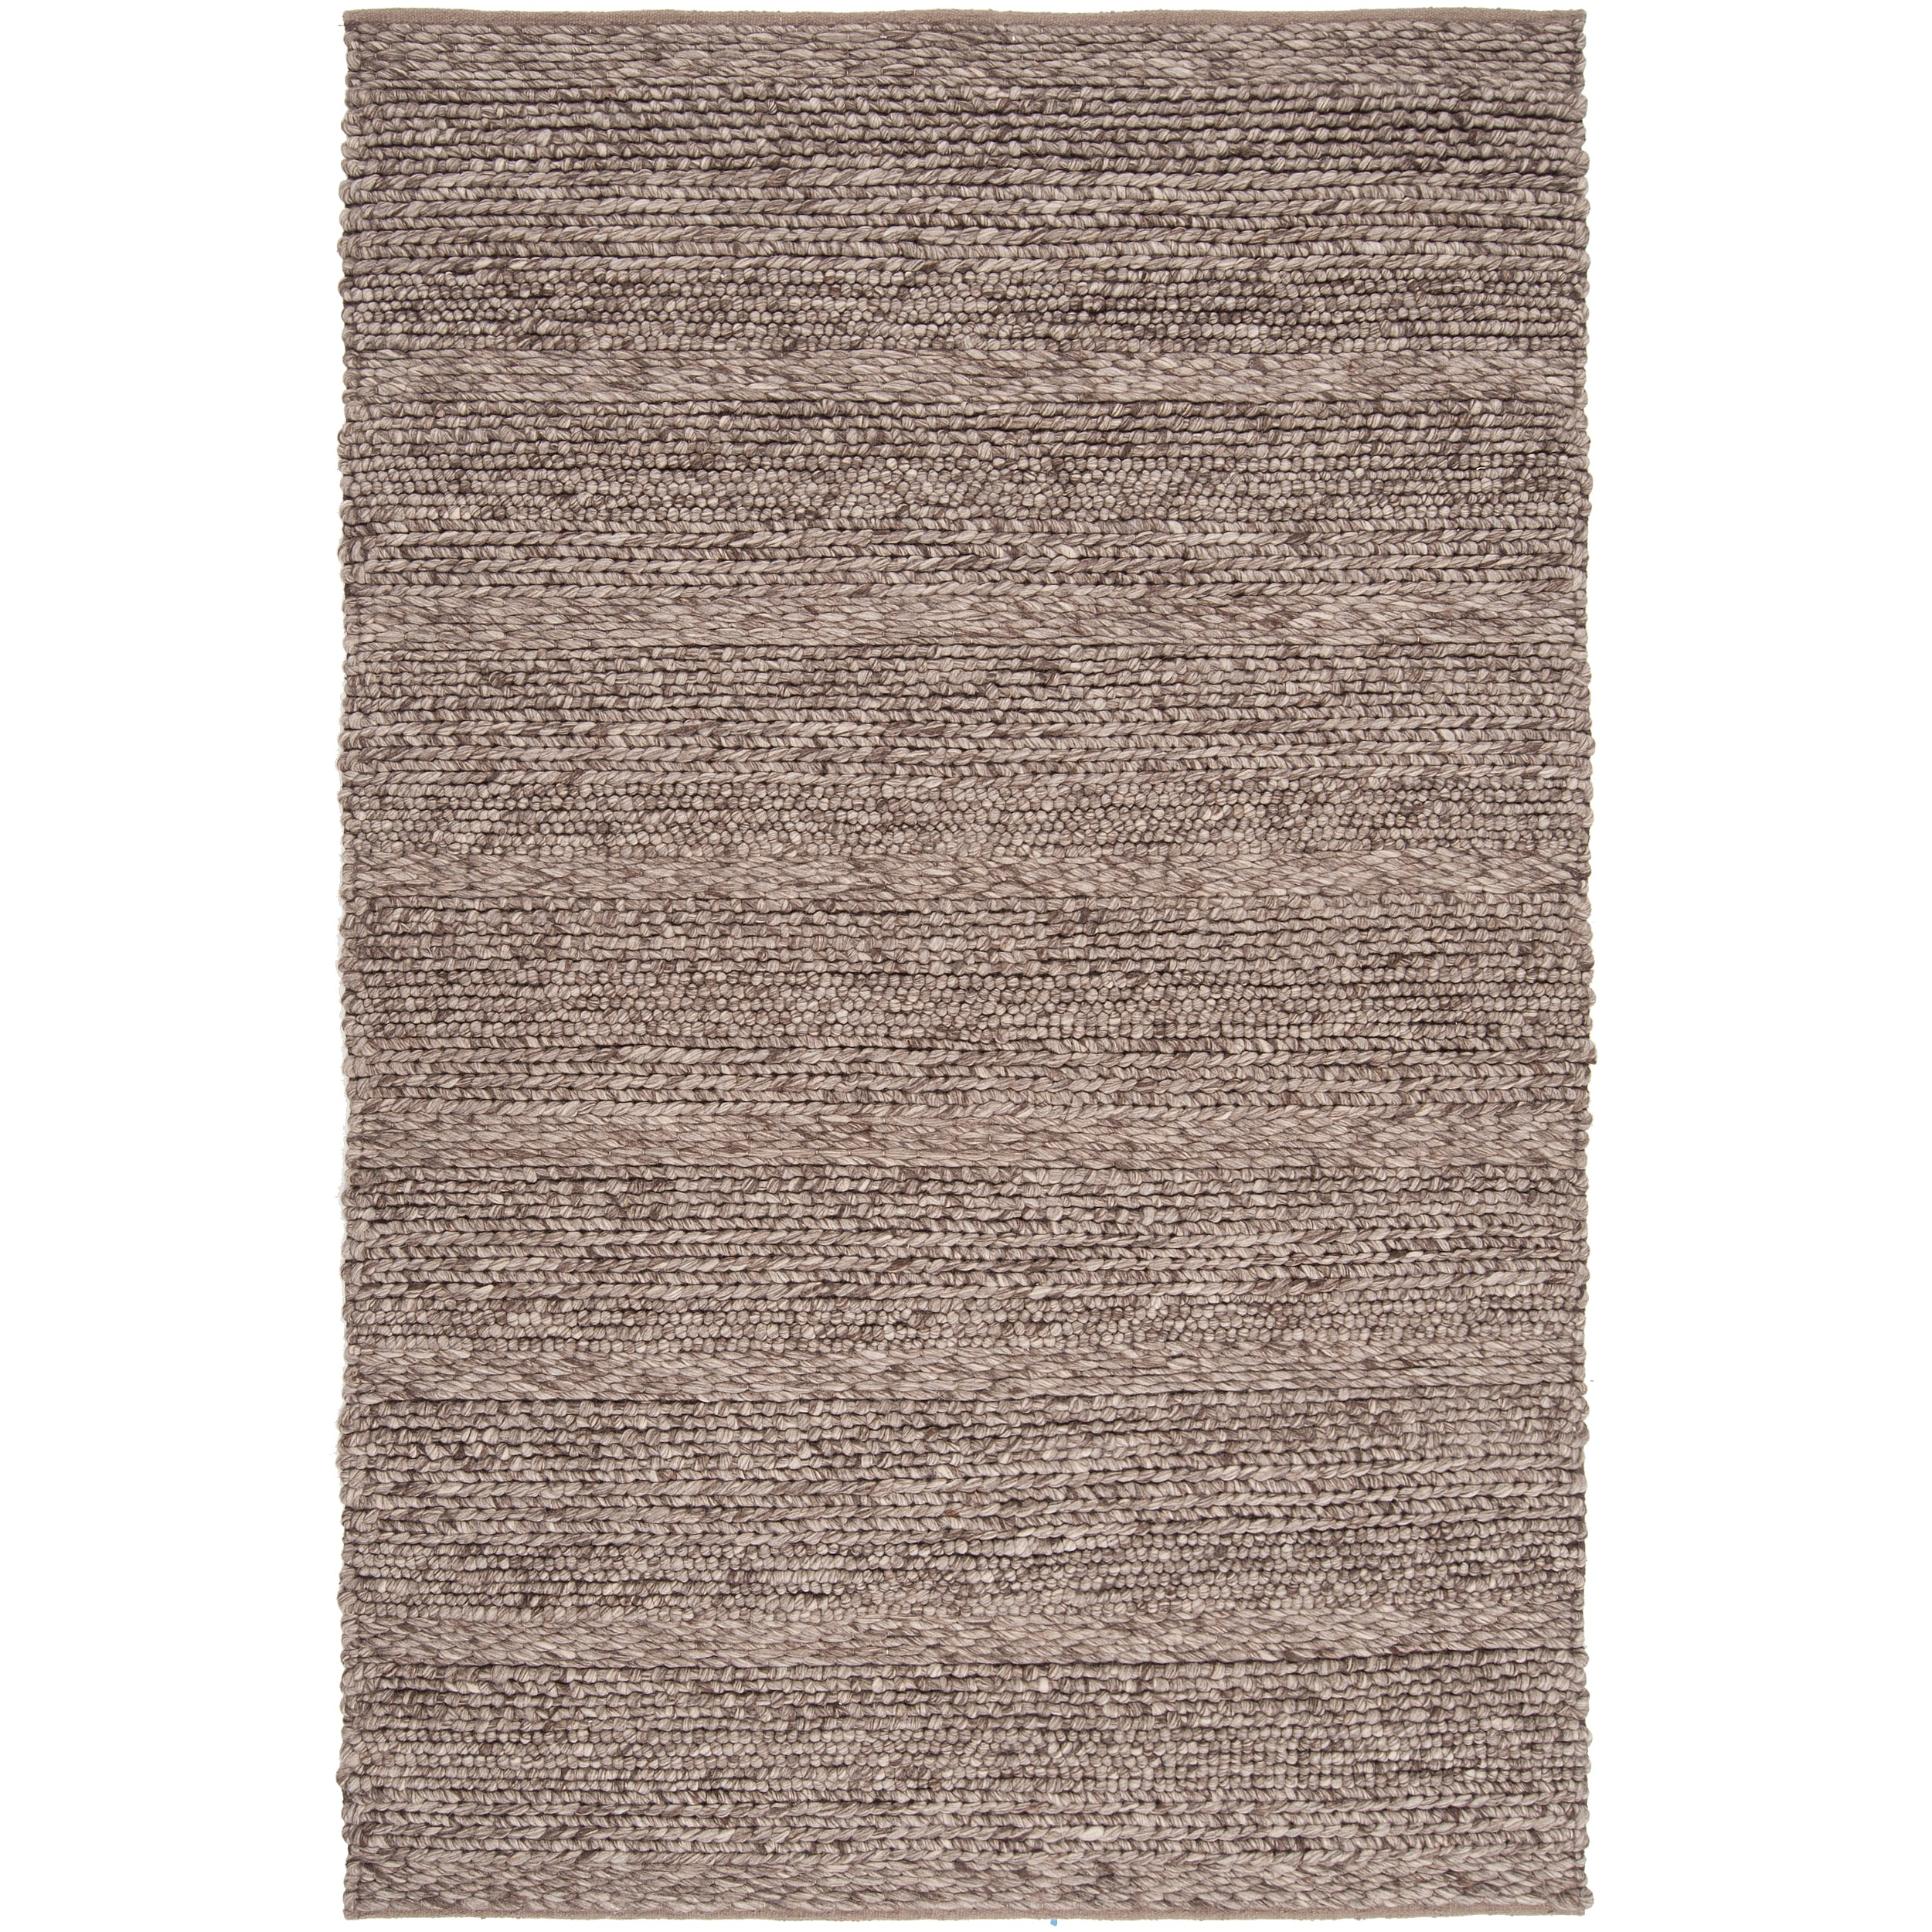 Hand-woven Casual Solid Brown Auke Wool Rug (8' x 10')